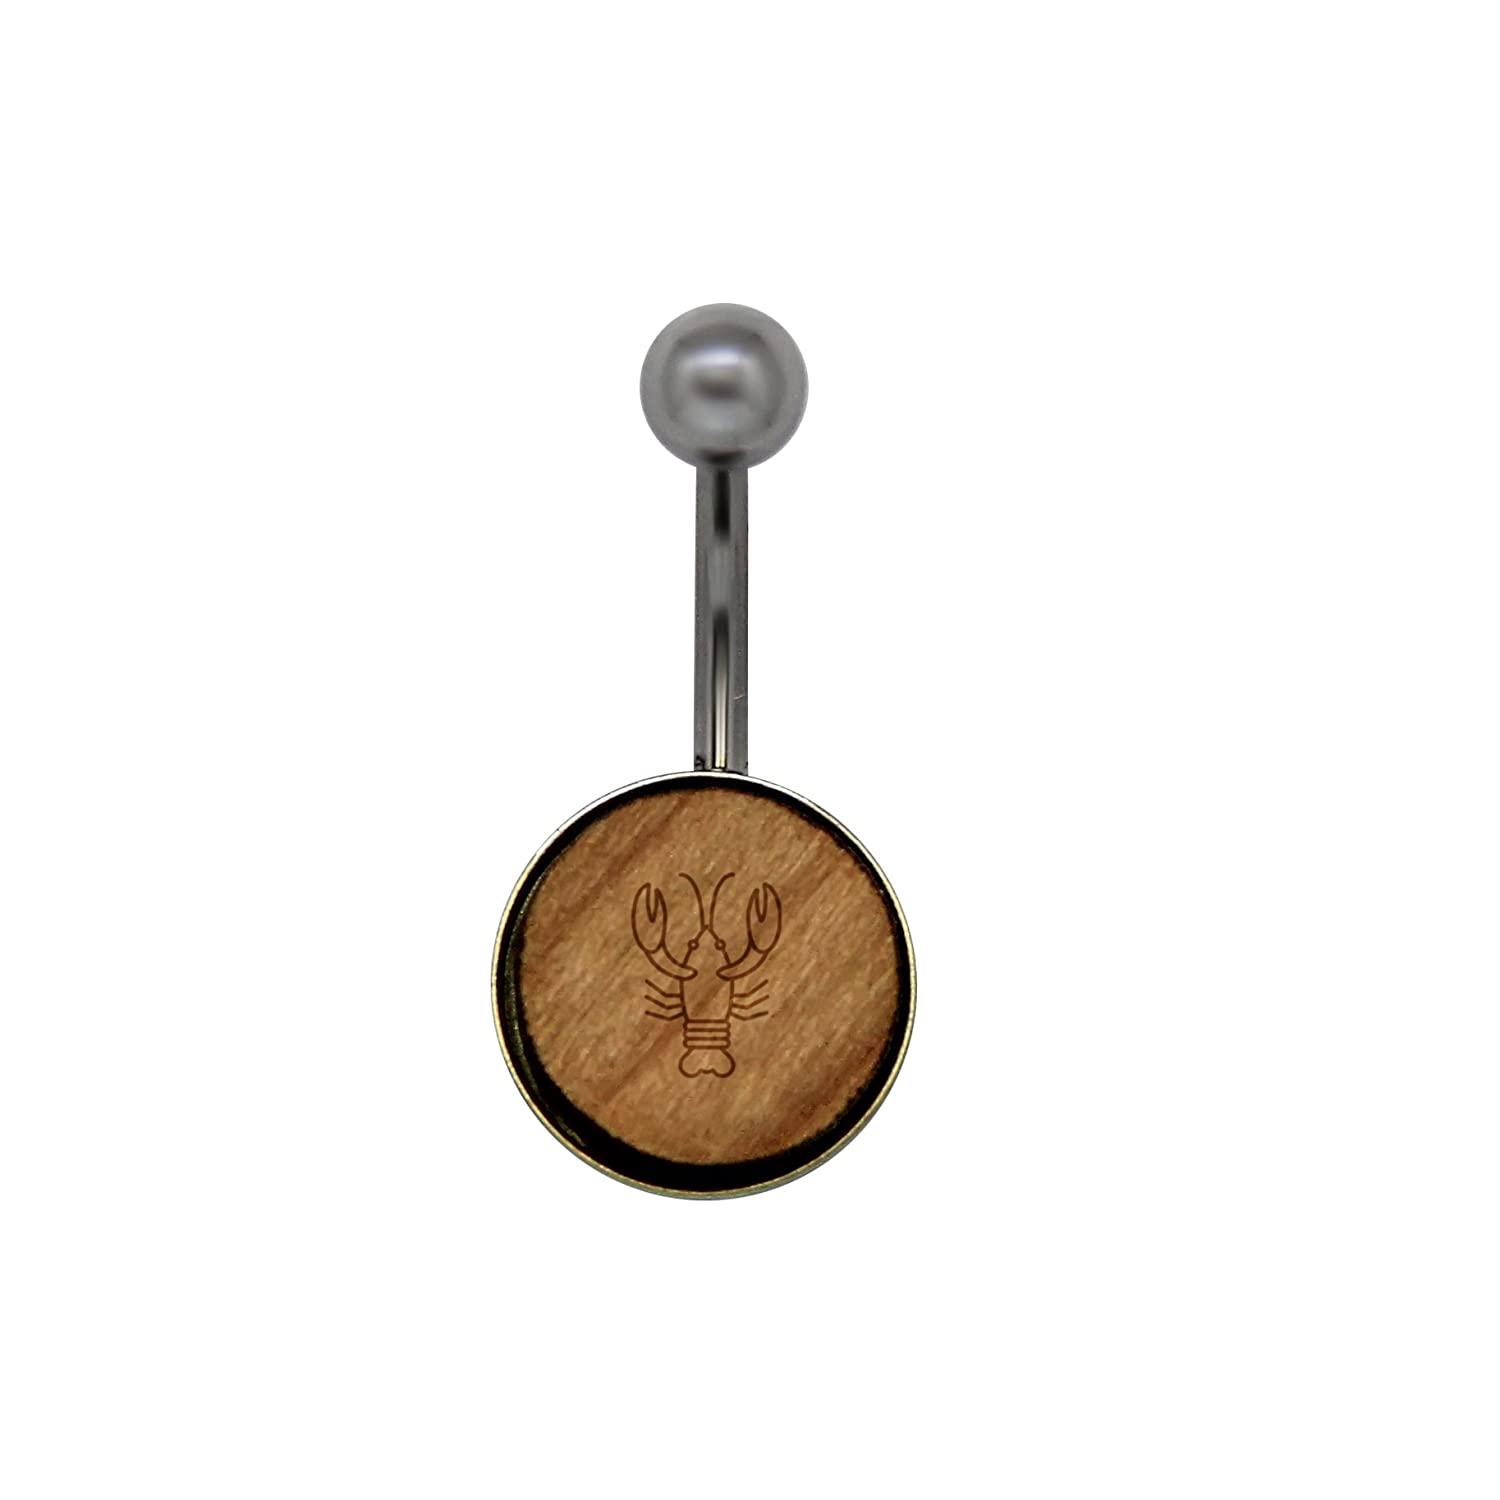 Rustic Wood Navel Ring with Laser Engraved Design Lobster Surgical Stainless Steel Belly Button Rings Size 14 Gauge Wooden Navel Ring